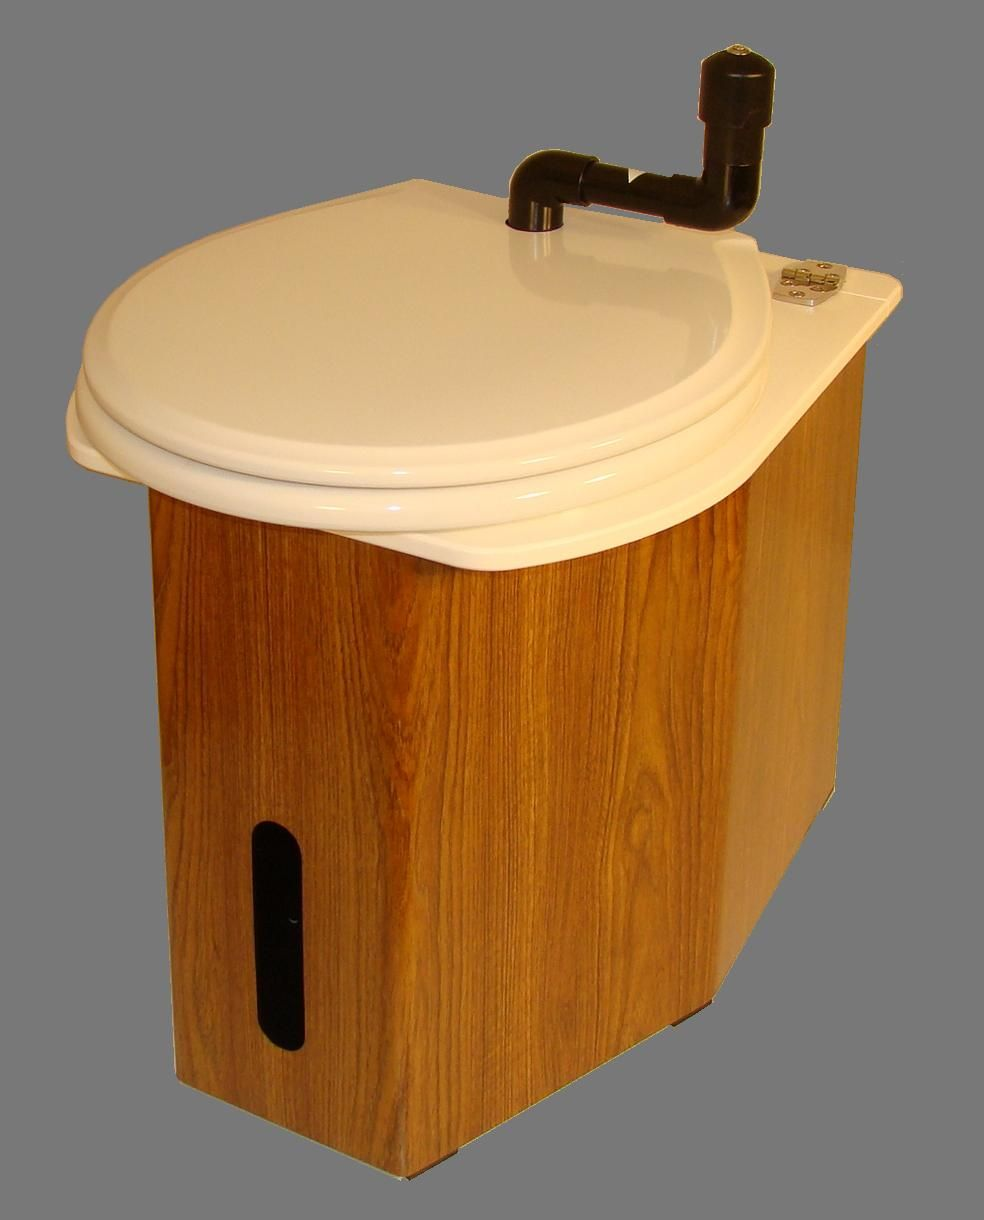 C-Head portable composting toilet system | Simple Life - Nature ...